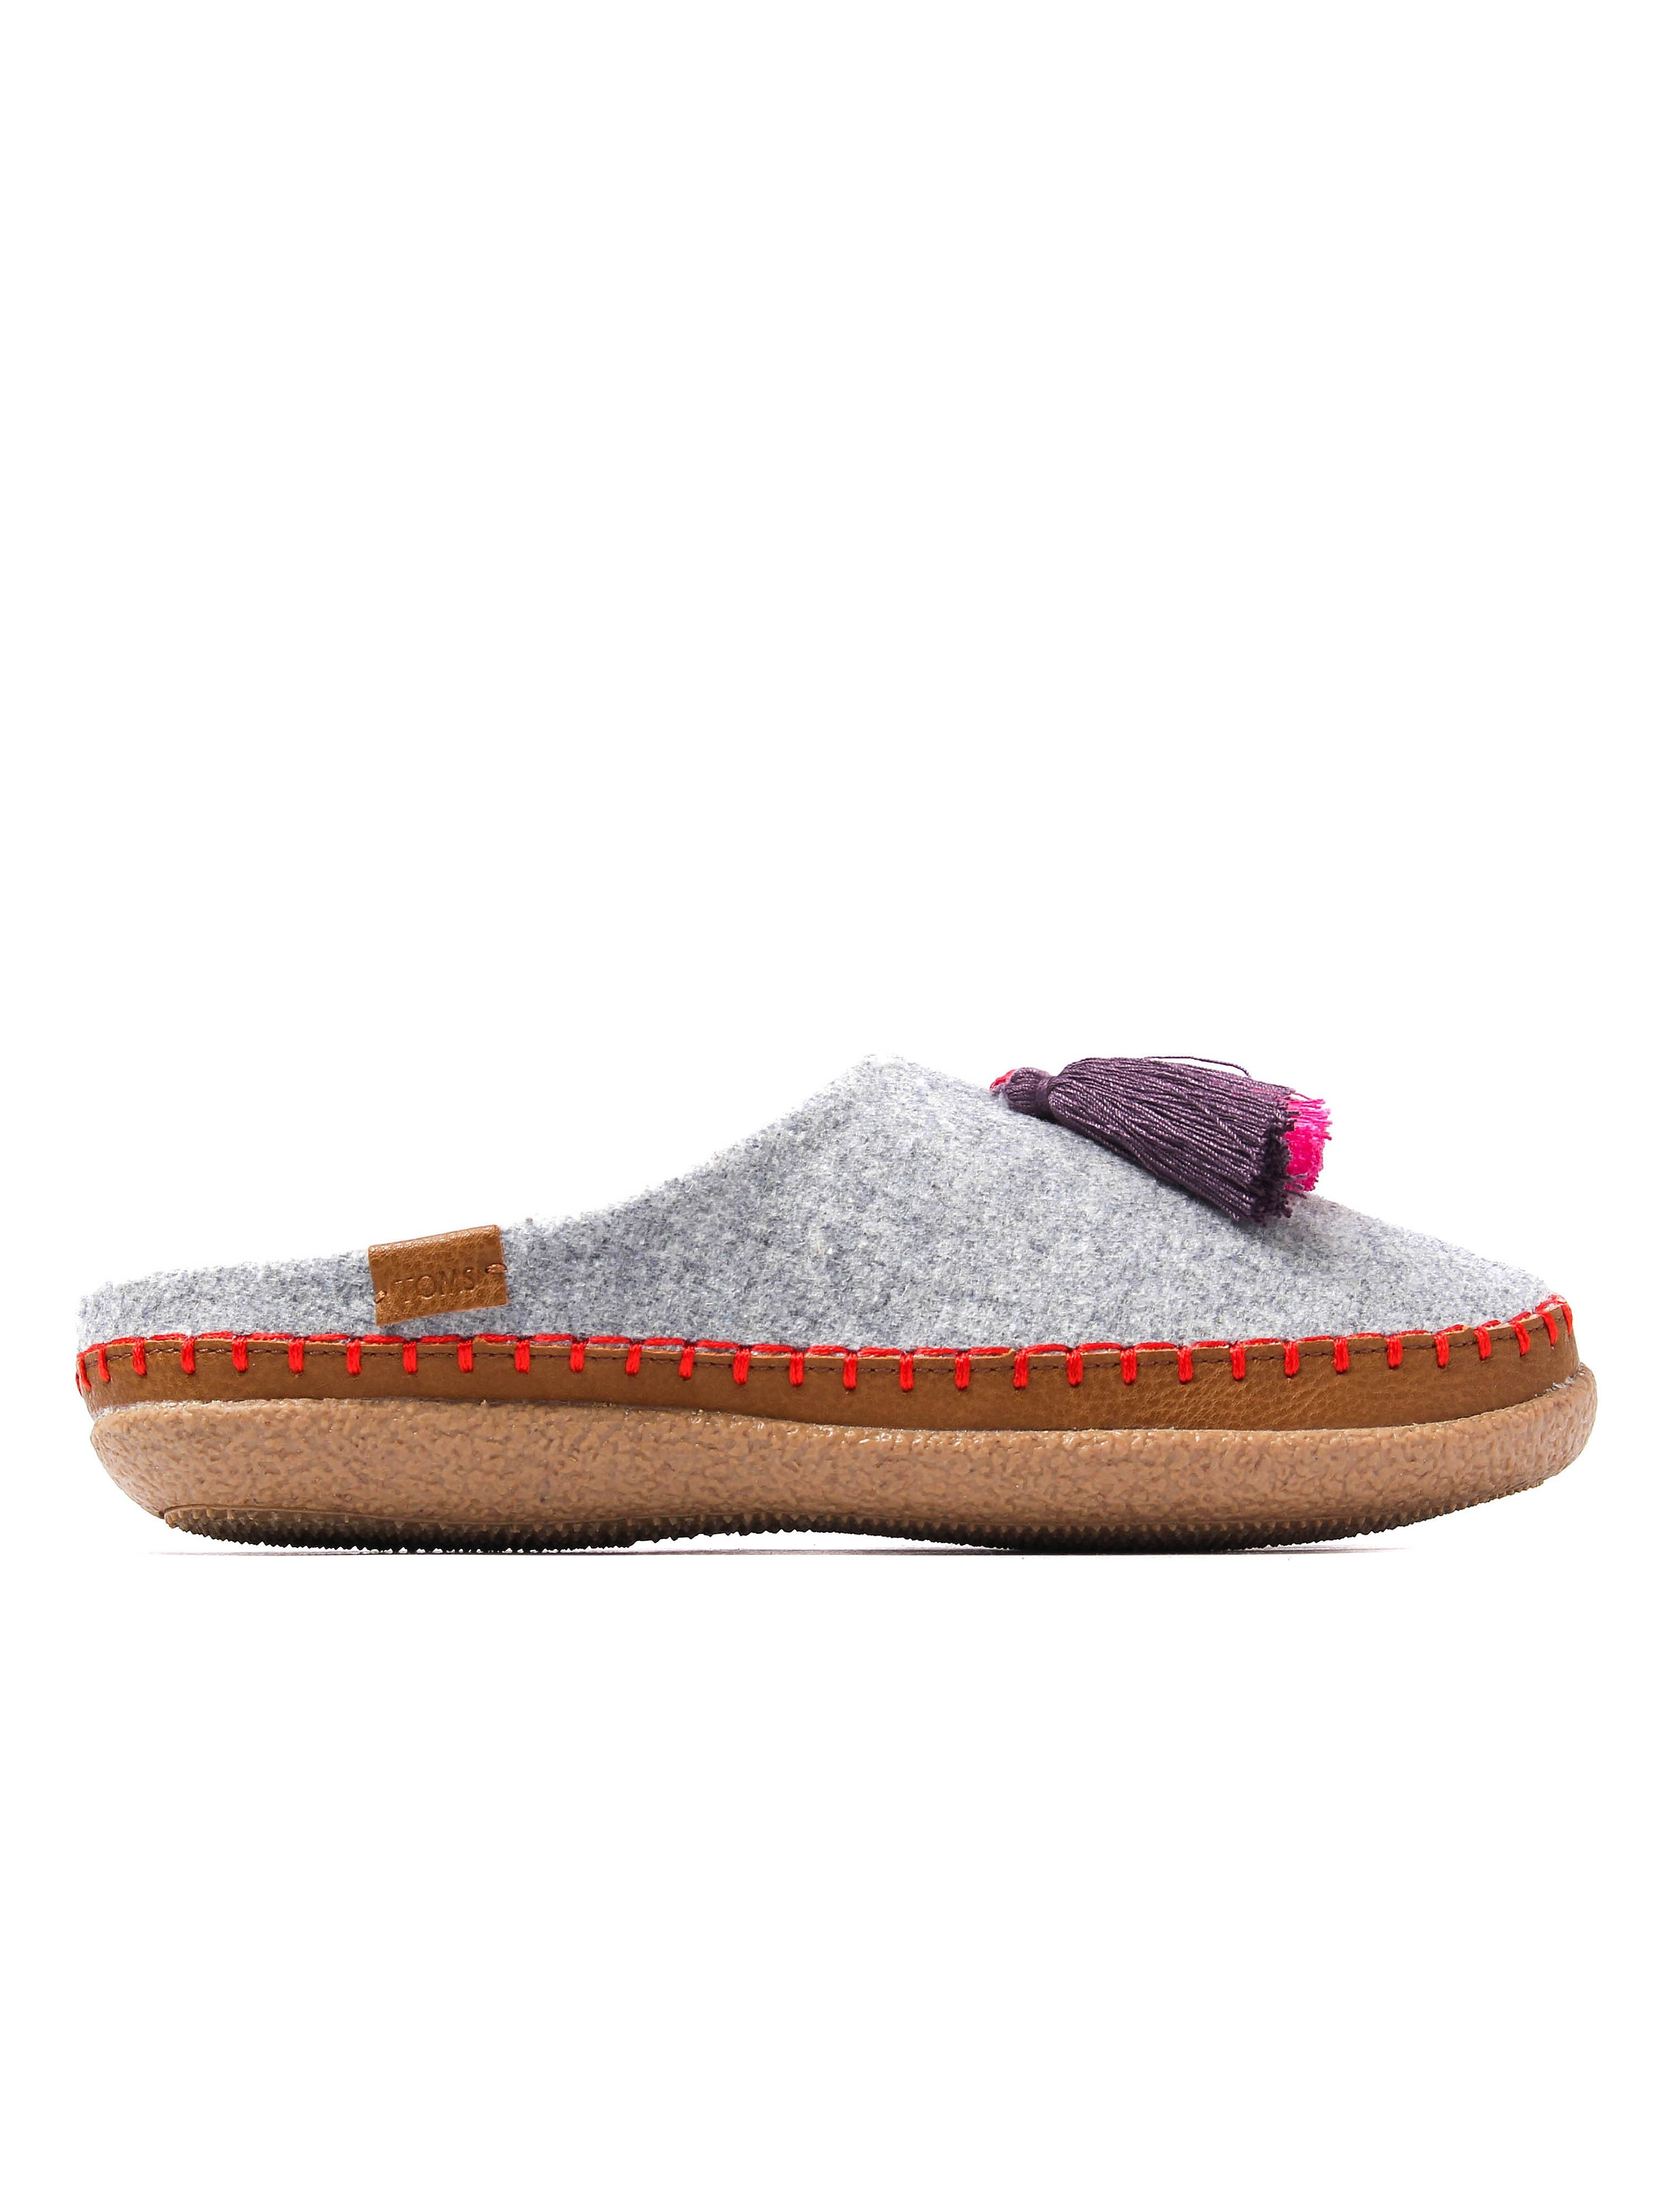 Toms Women's Ivy Wool Moccasin Slippers - Drizzle Grey Tassels